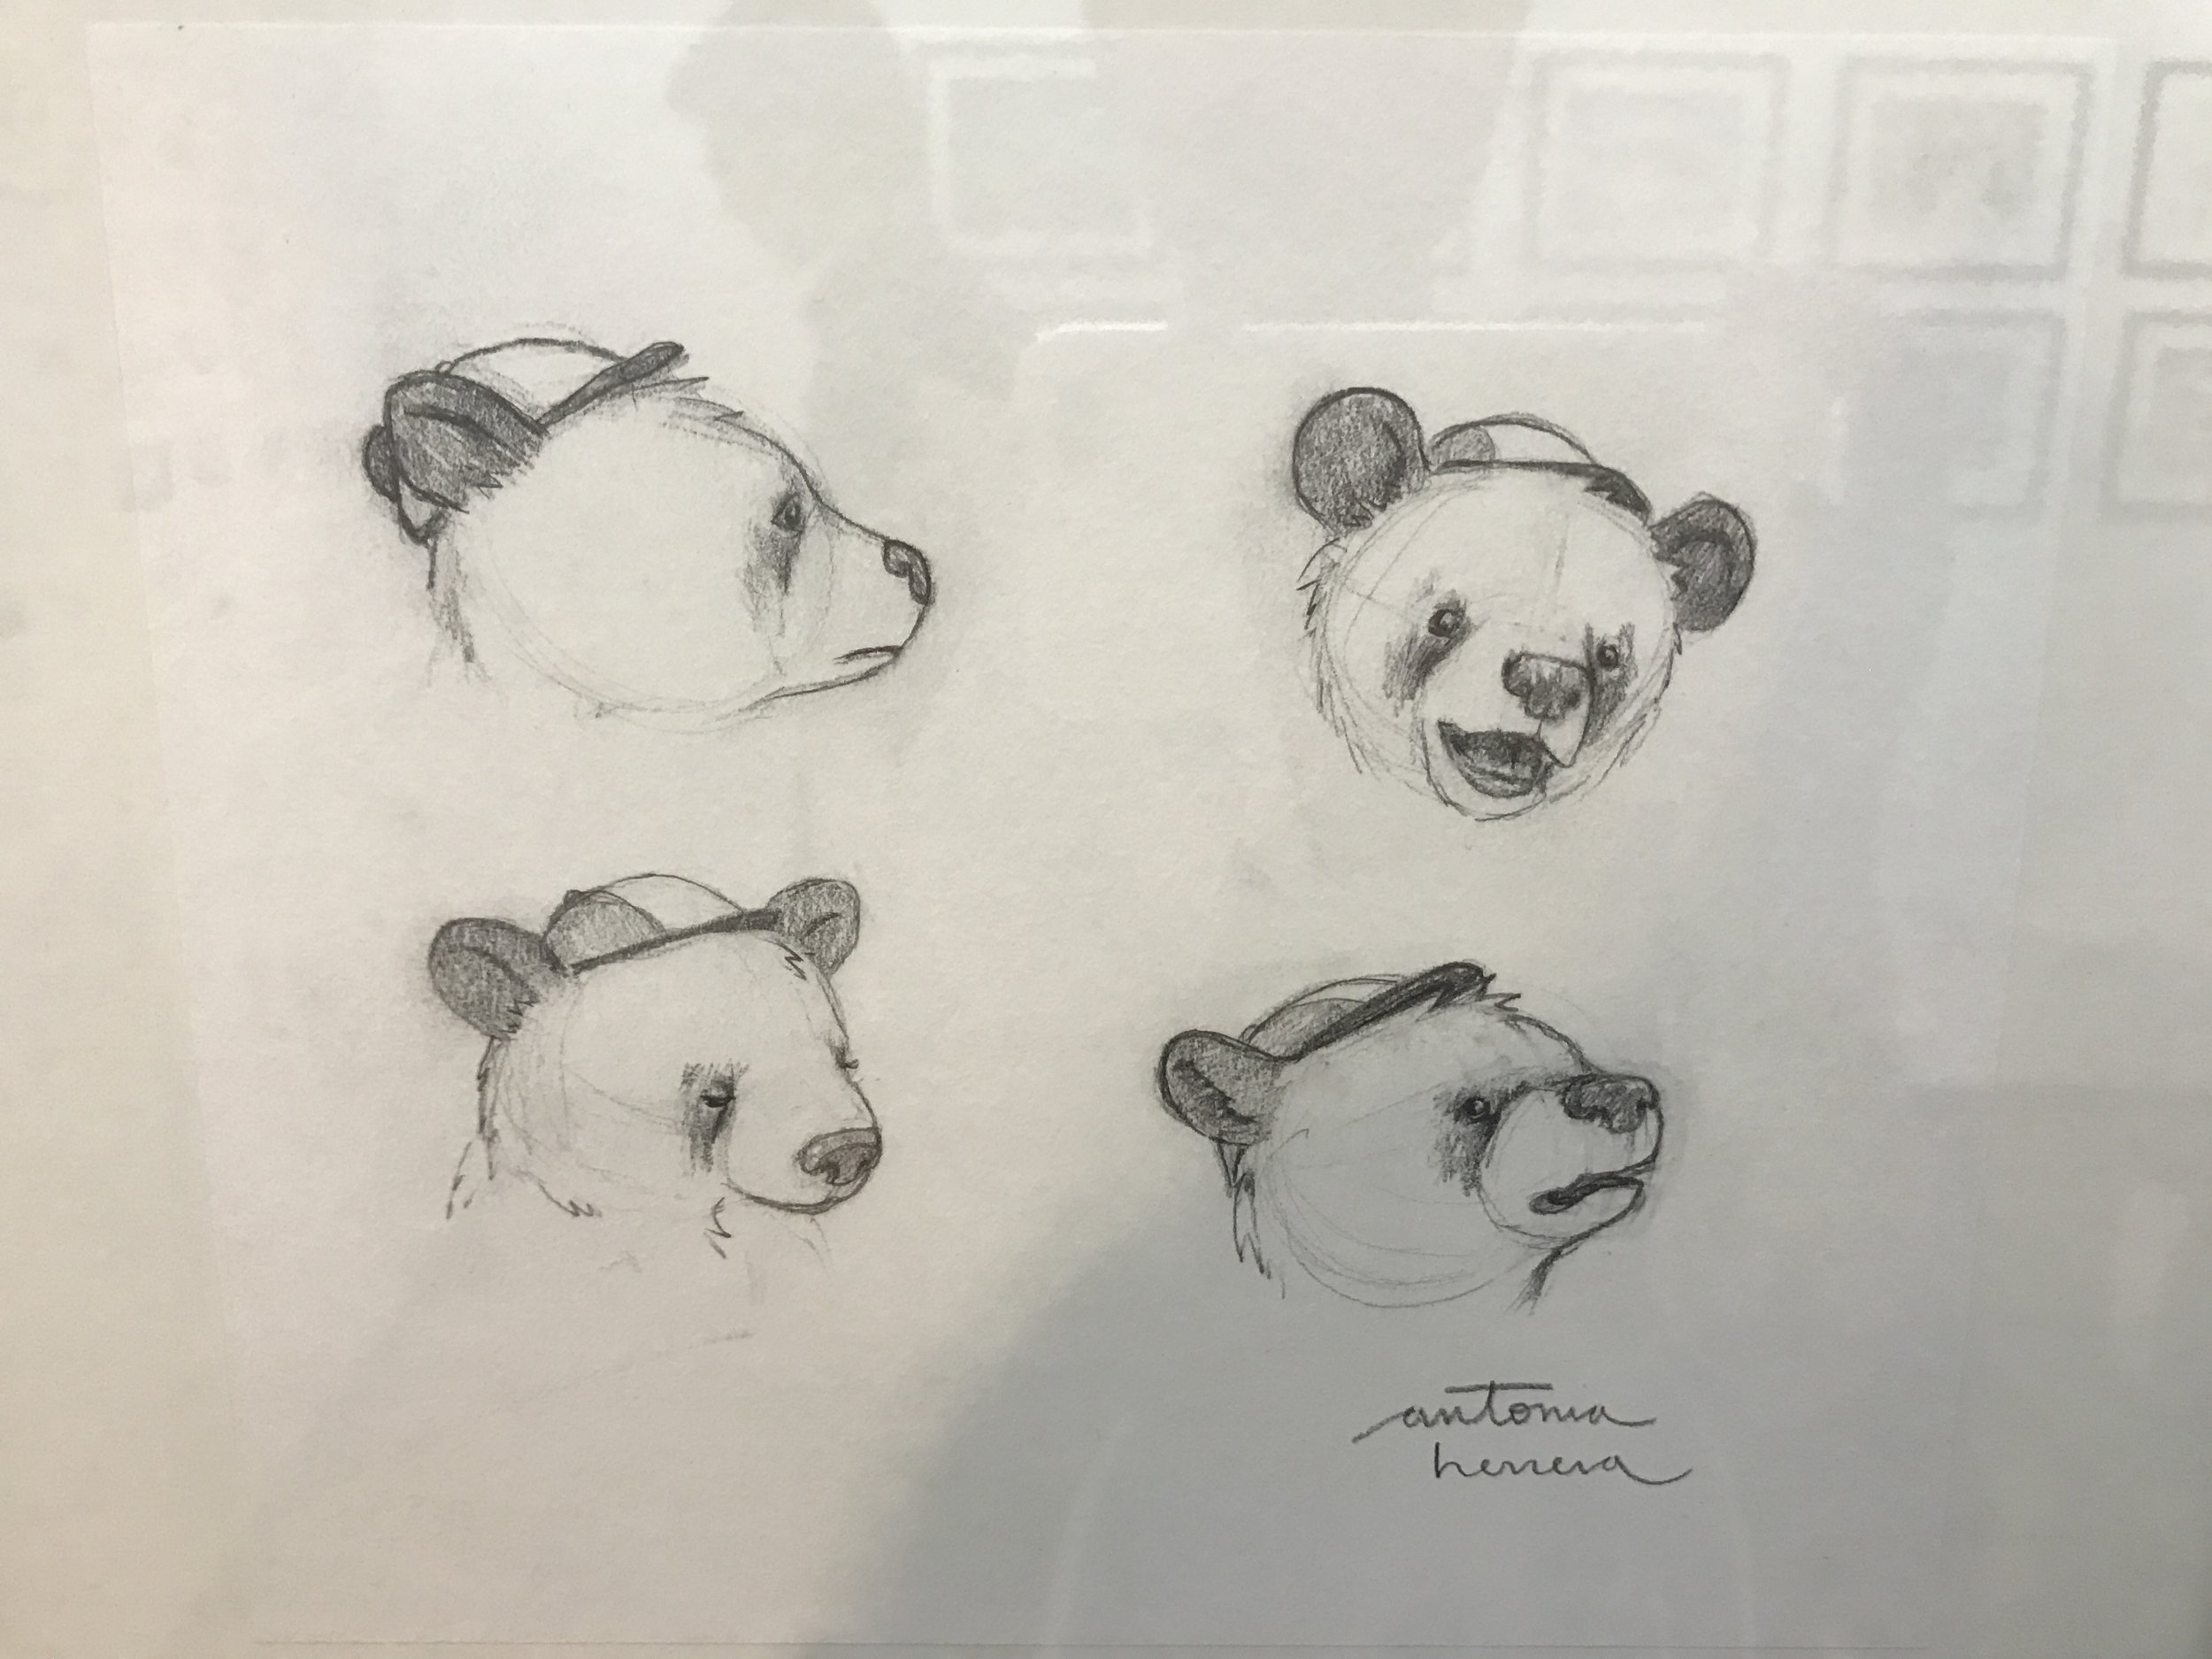 Bear emotions sketch by Antonia Herrera